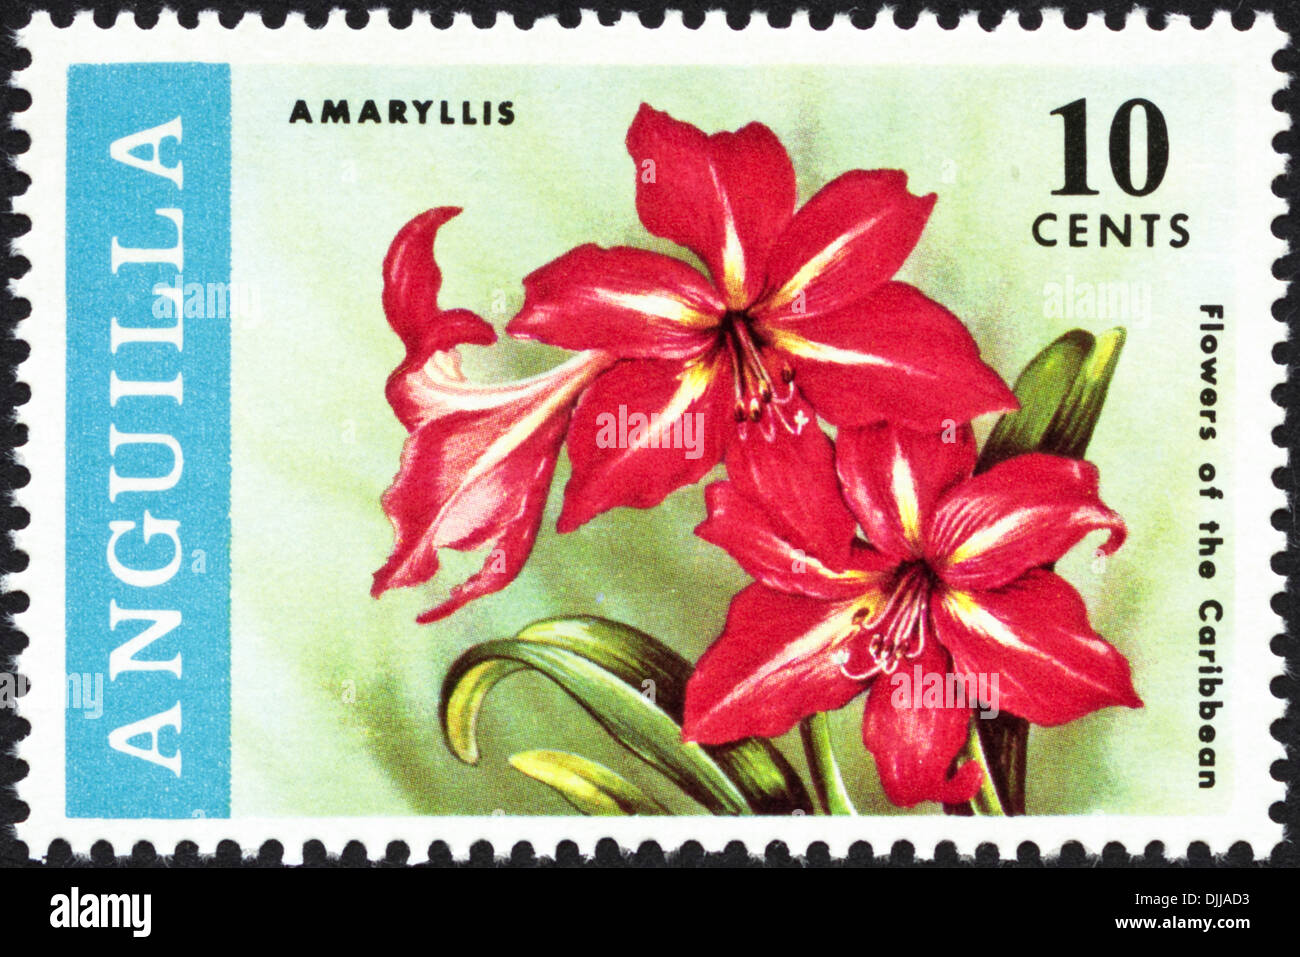 postage stamp Anguilla 10 cents featuring Flowers of the Caribbean issued 1969 - Stock Image